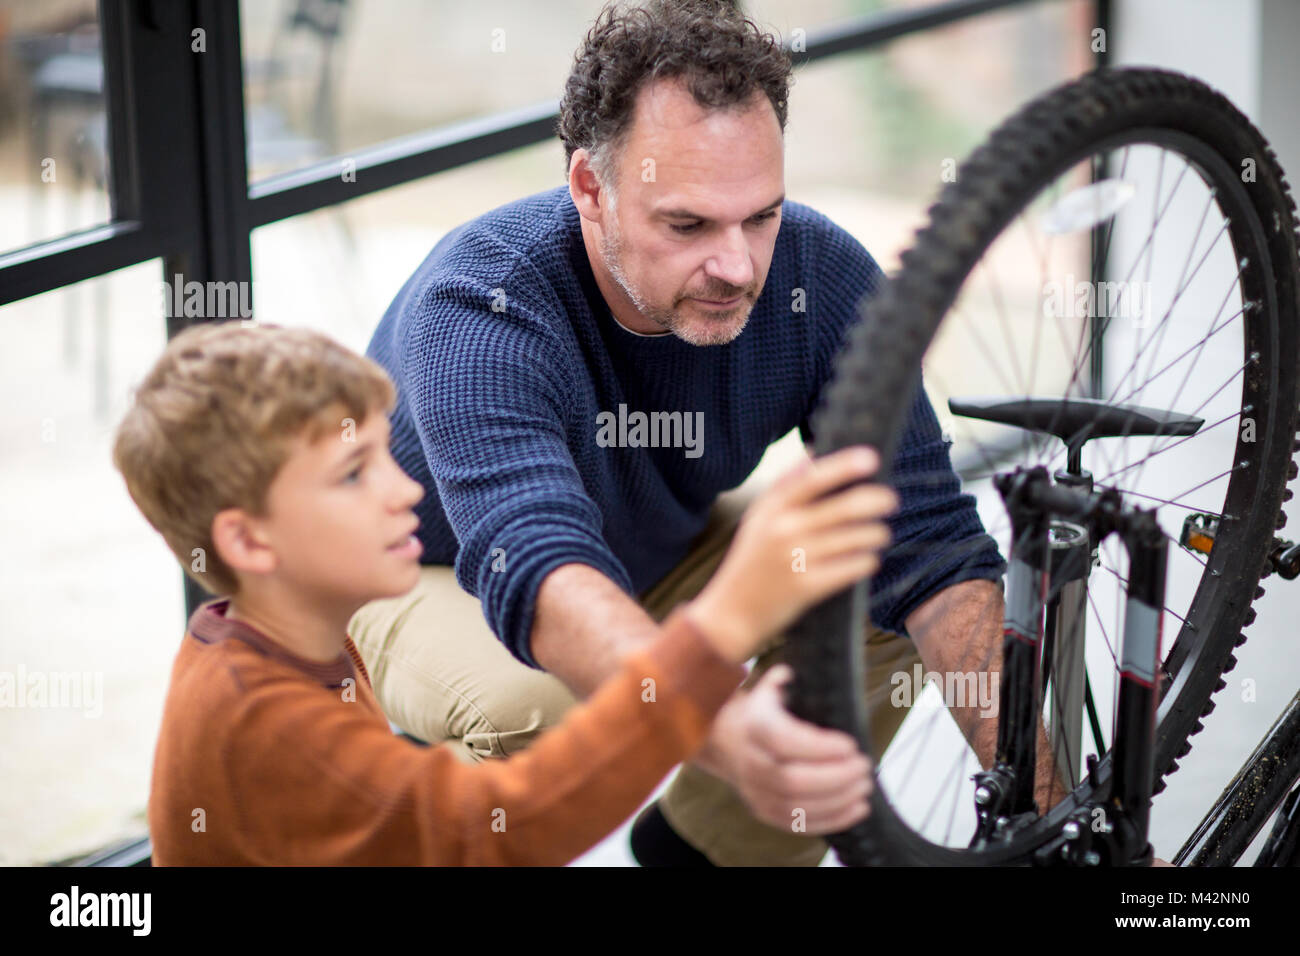 Father teaching Son how to care for his bicycle - Stock Image